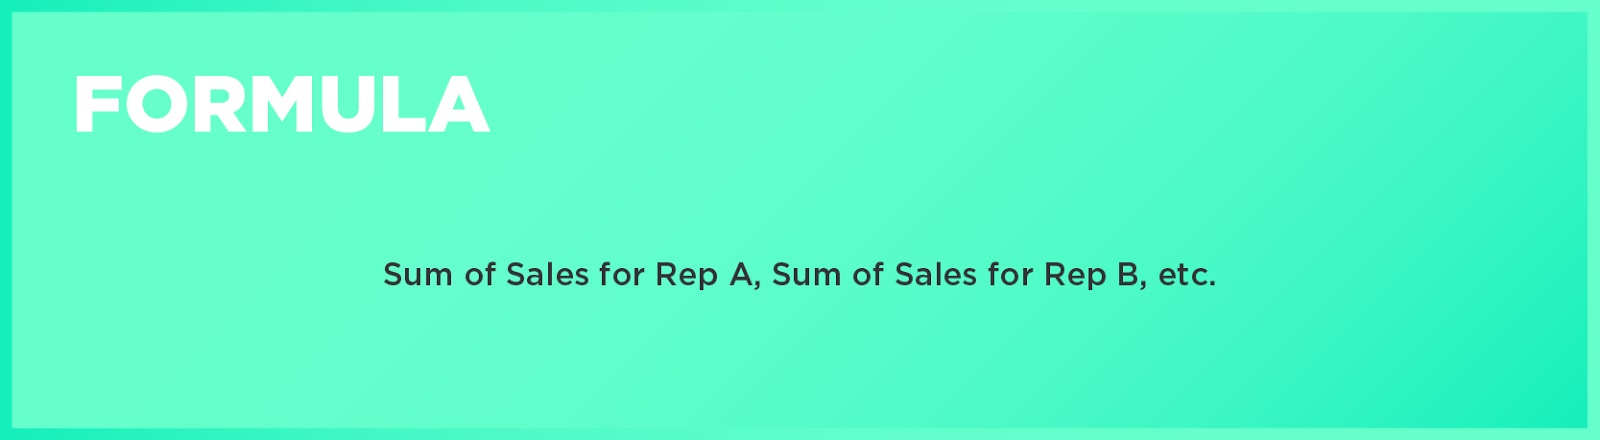 Formula: Sum of Sales for Rep A, Sum of Sales for Rep B, etc.